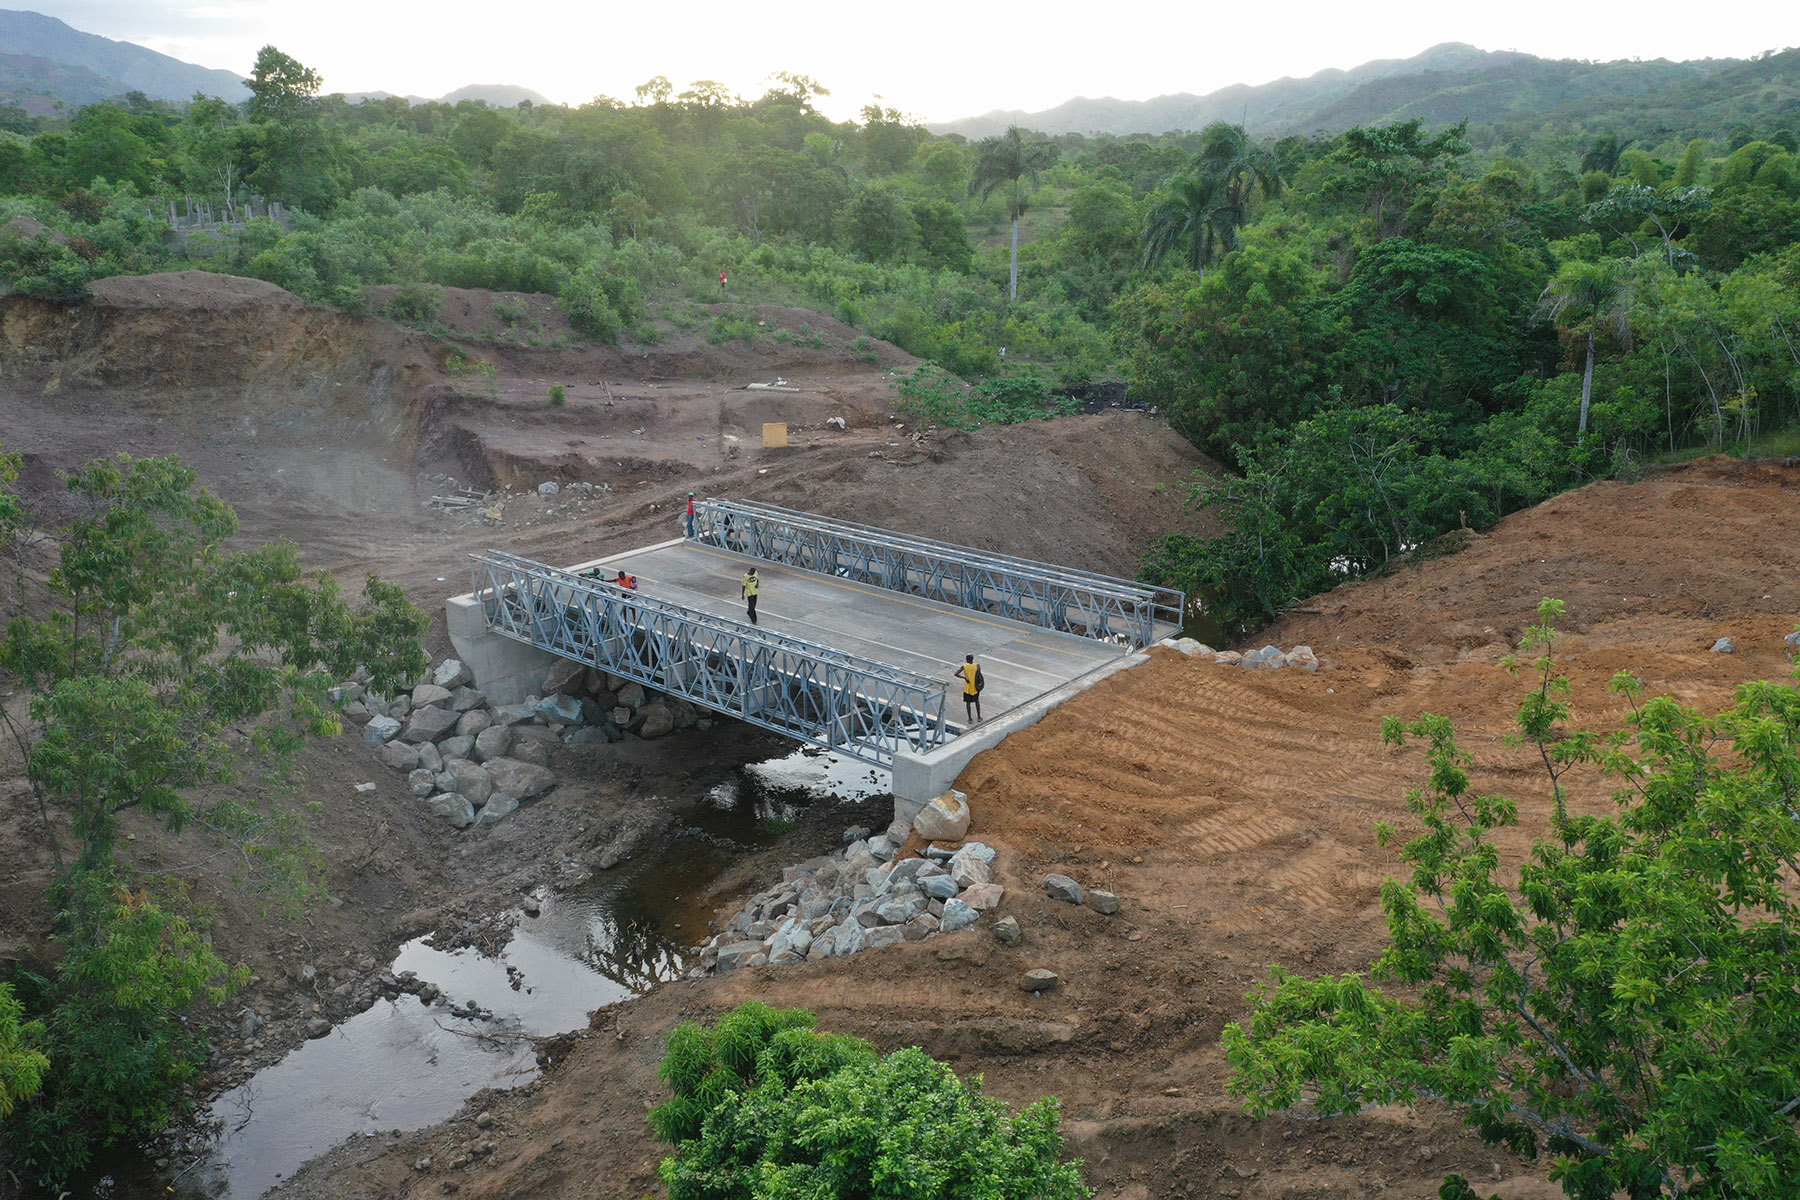 Tighe & Bond Partner with Foundation for Bridge in Haiti